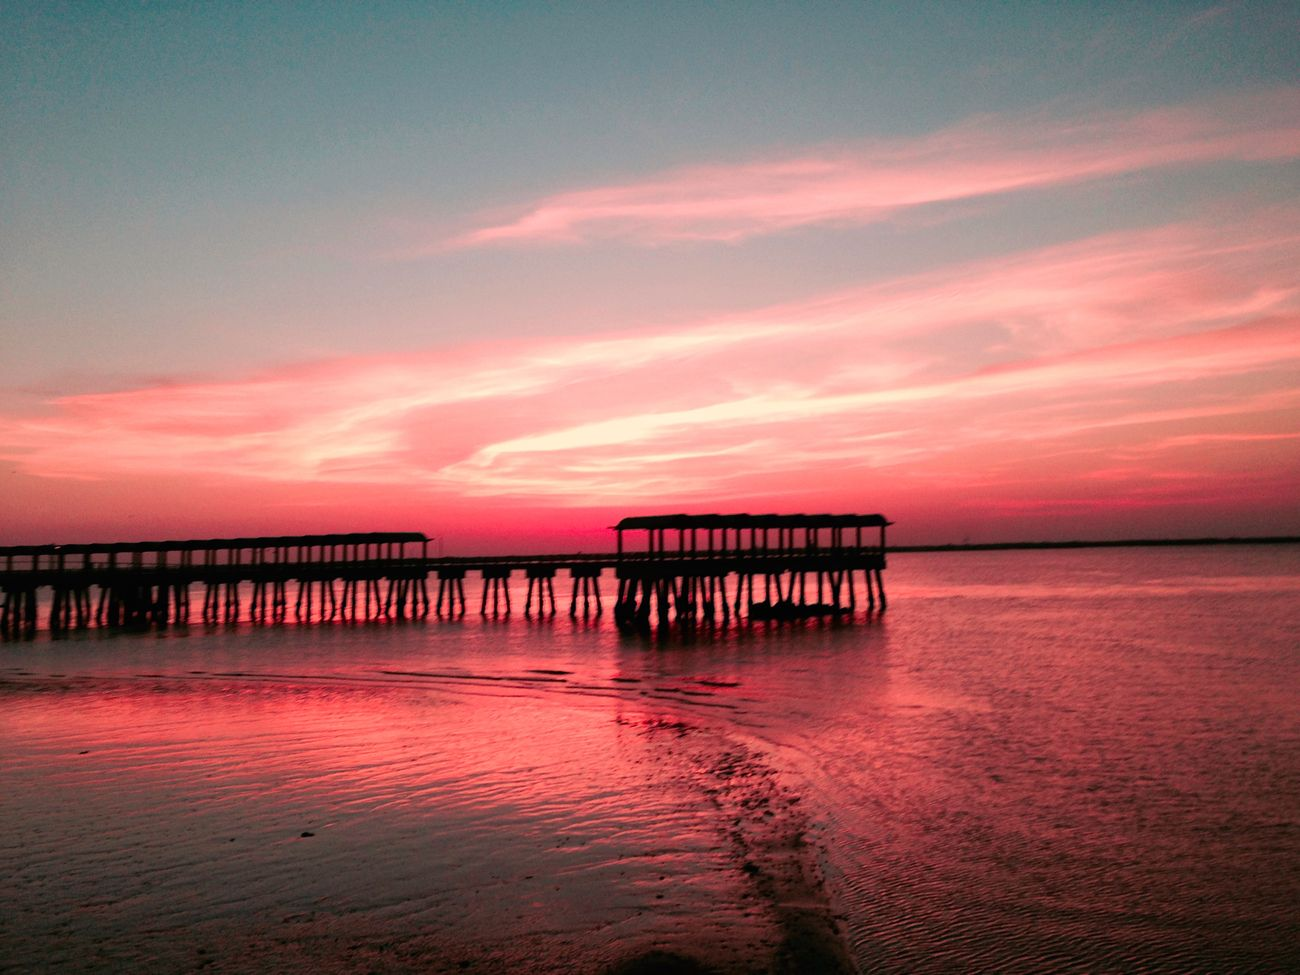 The crimson skies topped off a beautiful subset near the bay at jekyll island.